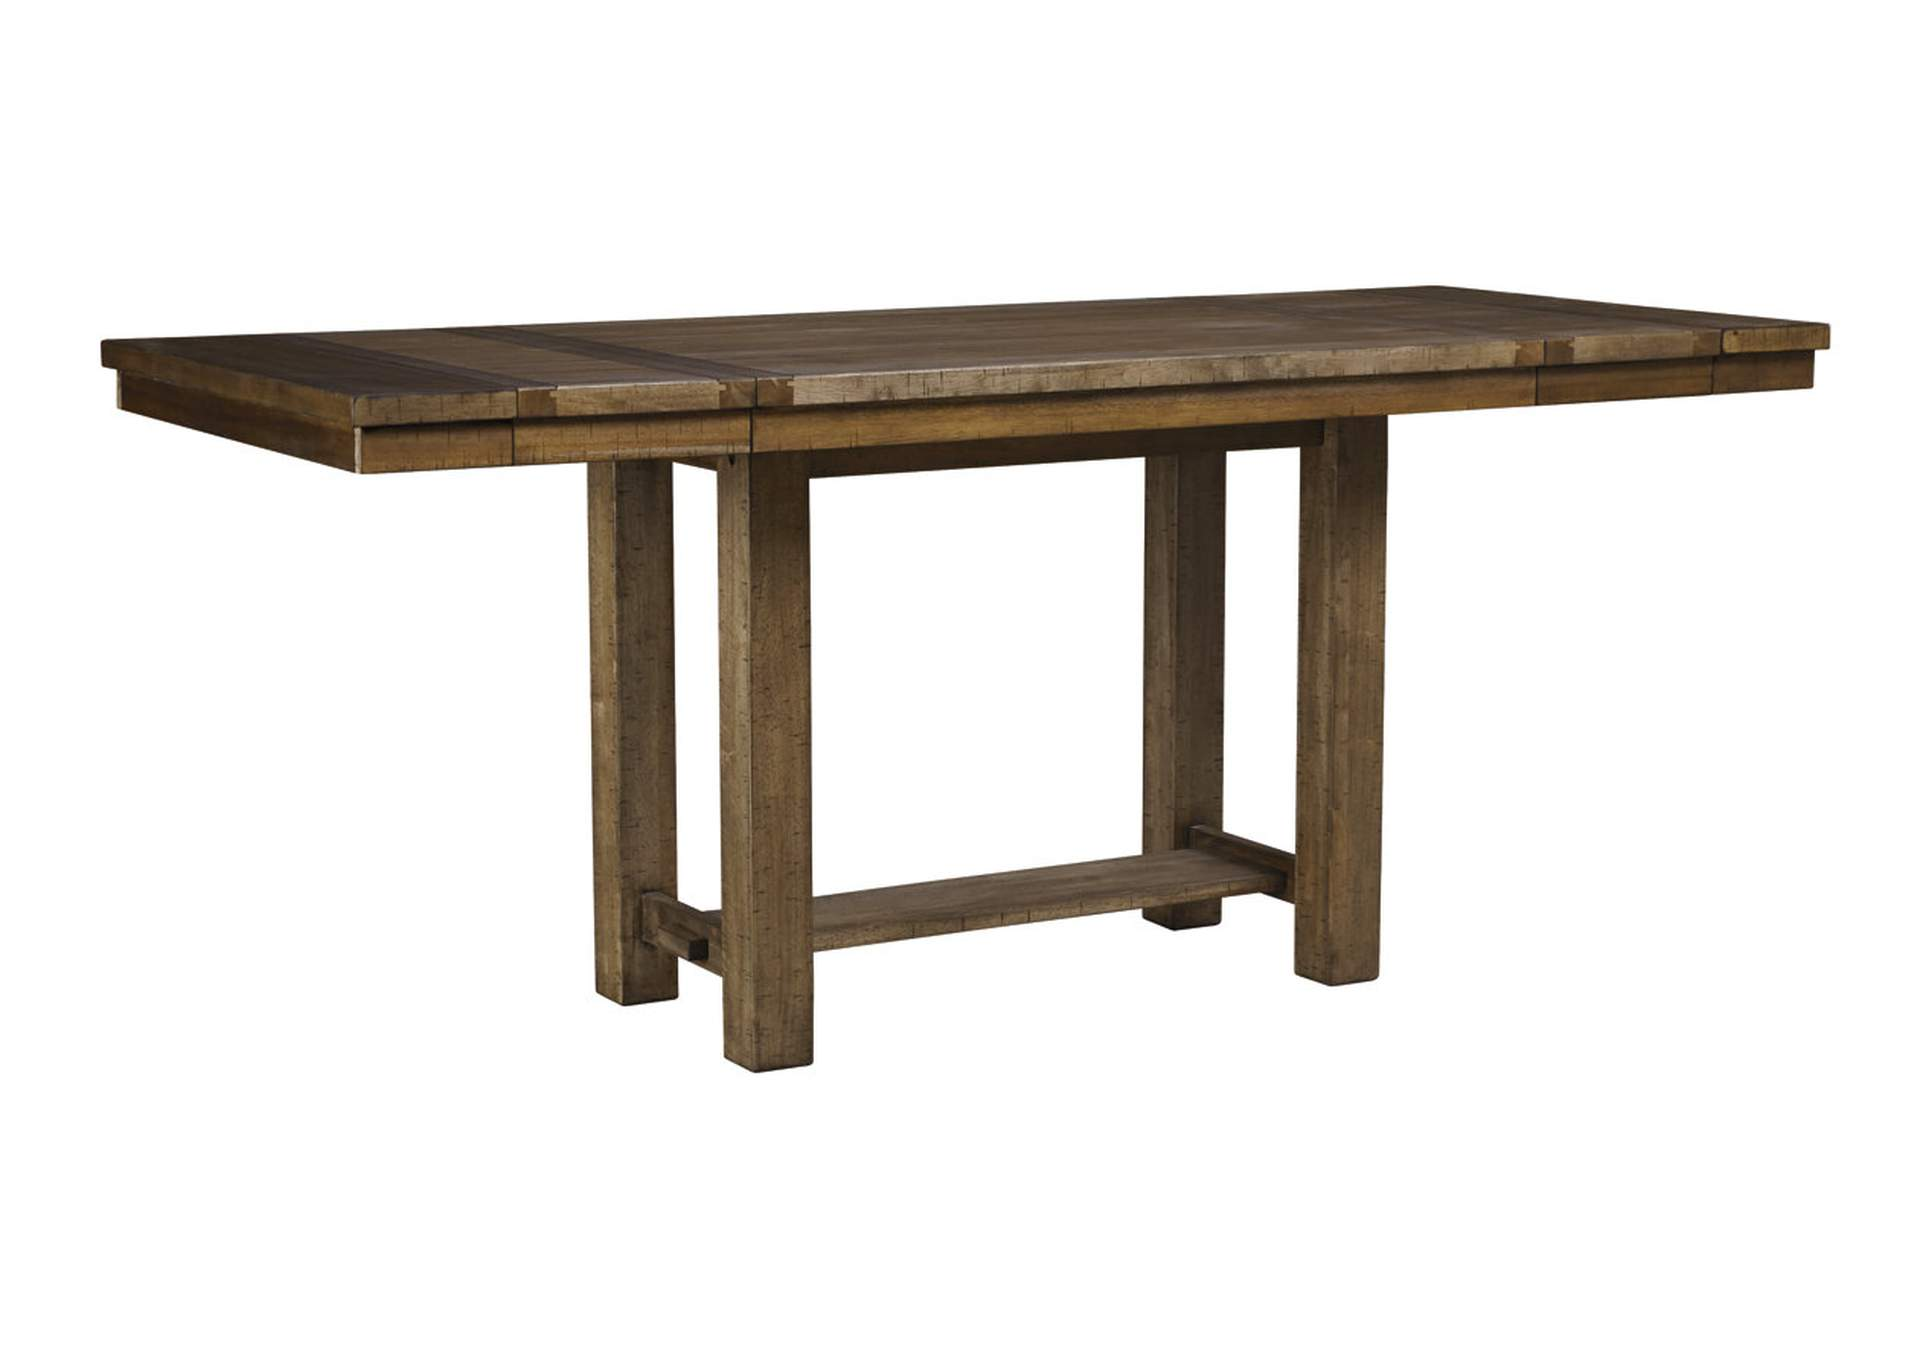 Moriville Gray Rectangular Dining Room Counter Extension Table,Signature Design By Ashley